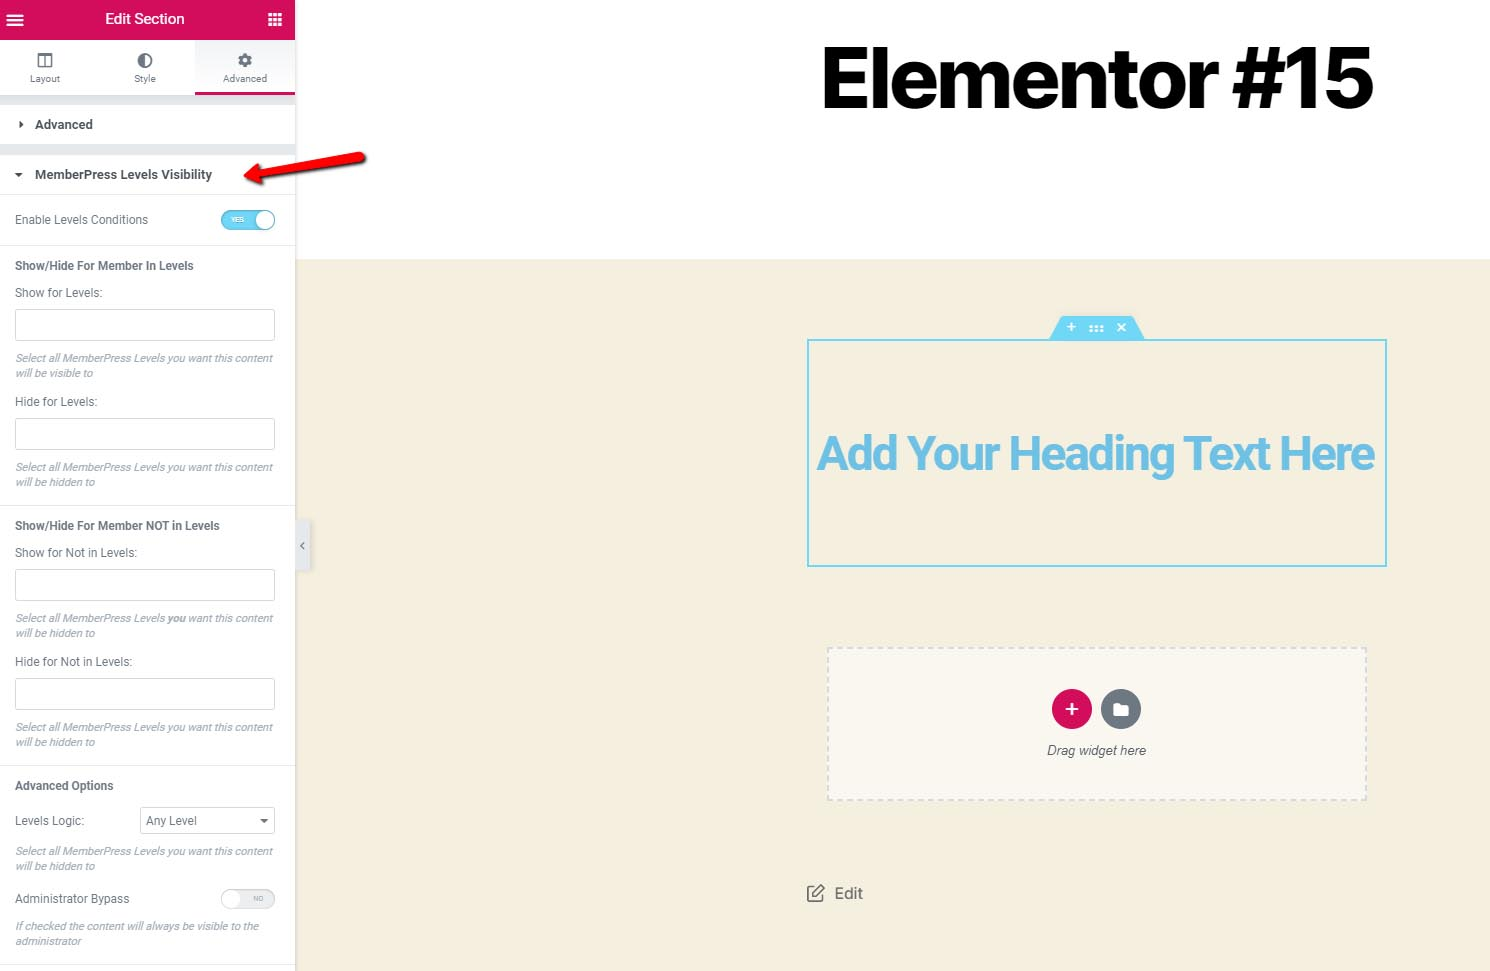 Dynamic Visibility for MemberPress & Elementor